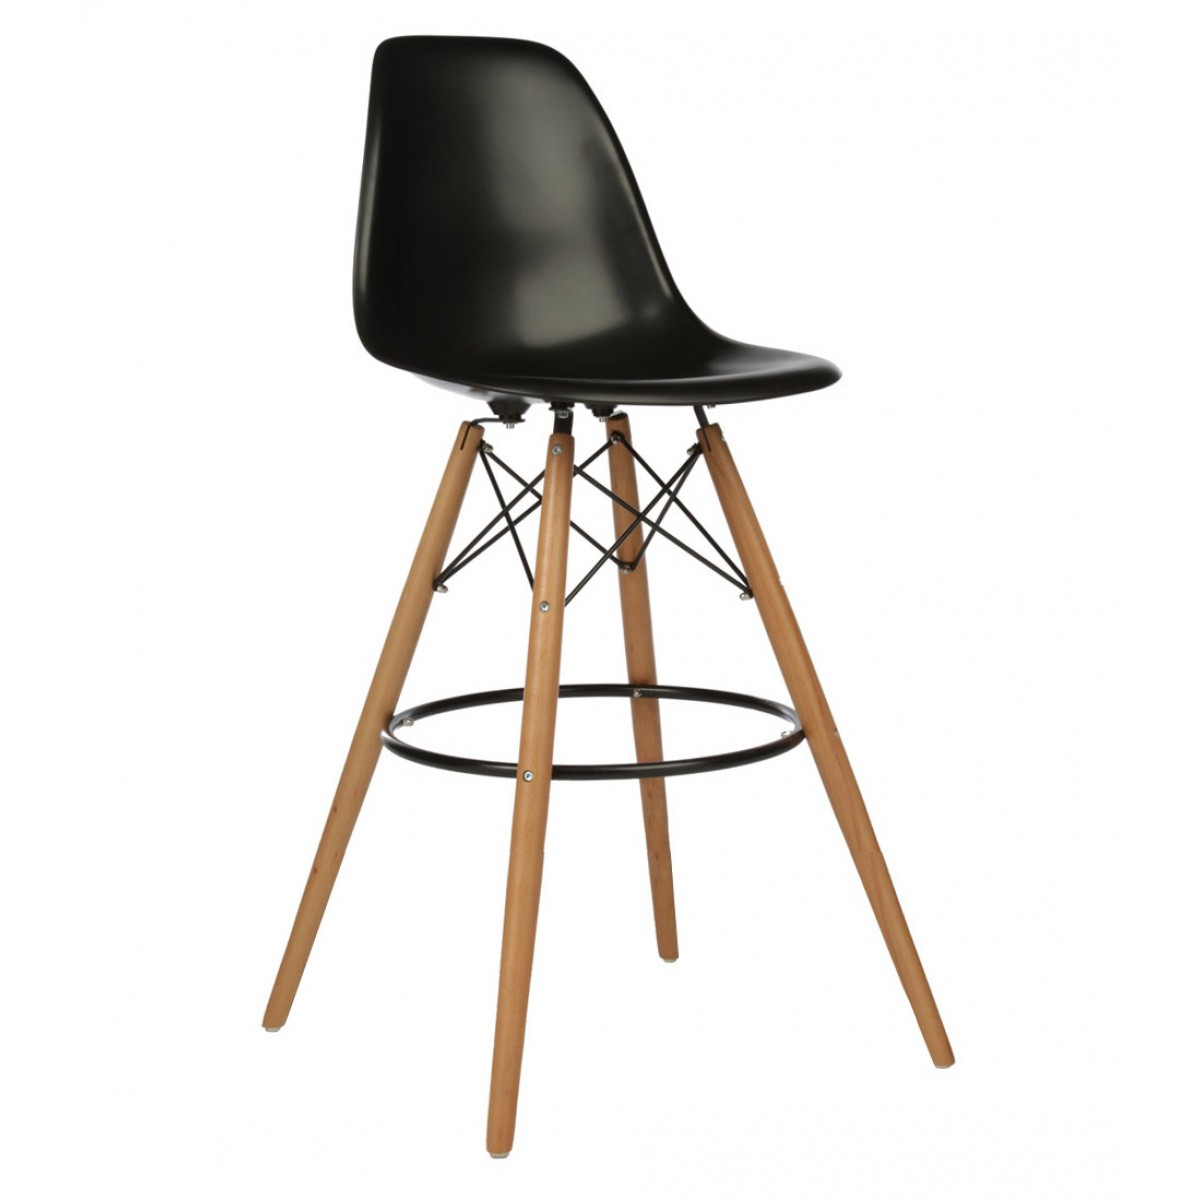 Wondrous Set Of 2 30 Inch Dsw Black Plastic Bar Stool With Wood Eiffel Legs Pabps2019 Chair Design Images Pabps2019Com